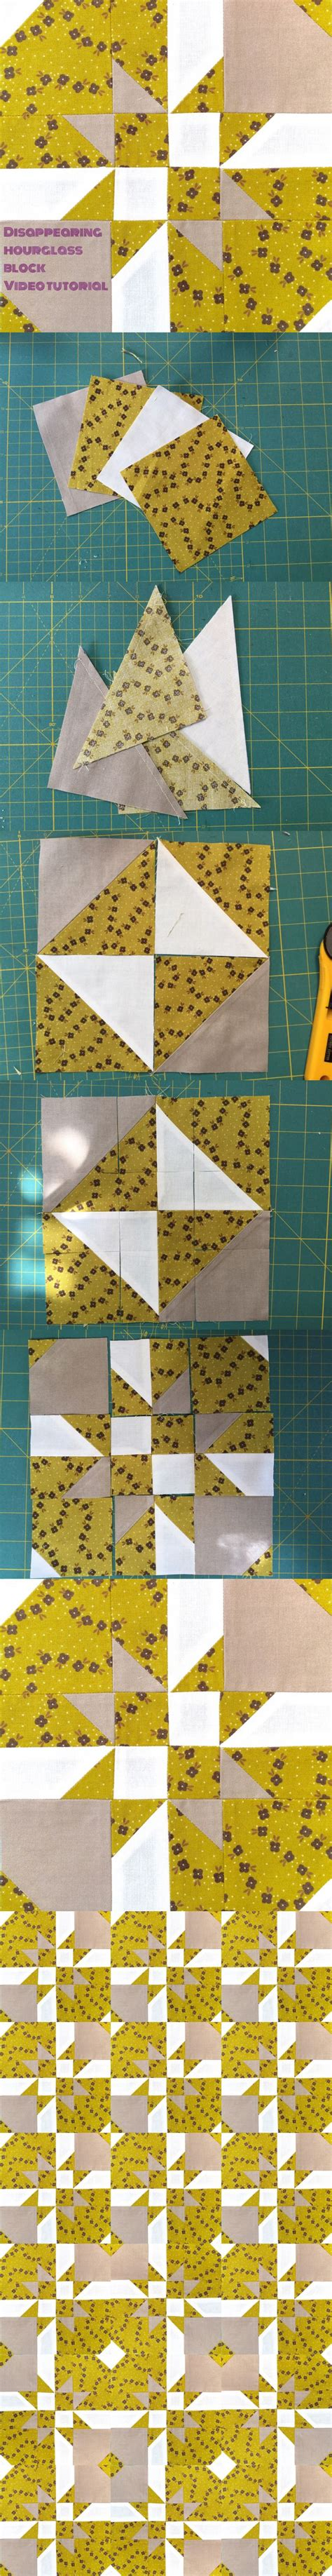 hourglass pattern in c 1000 images about sewing upcycle recycle on pinterest